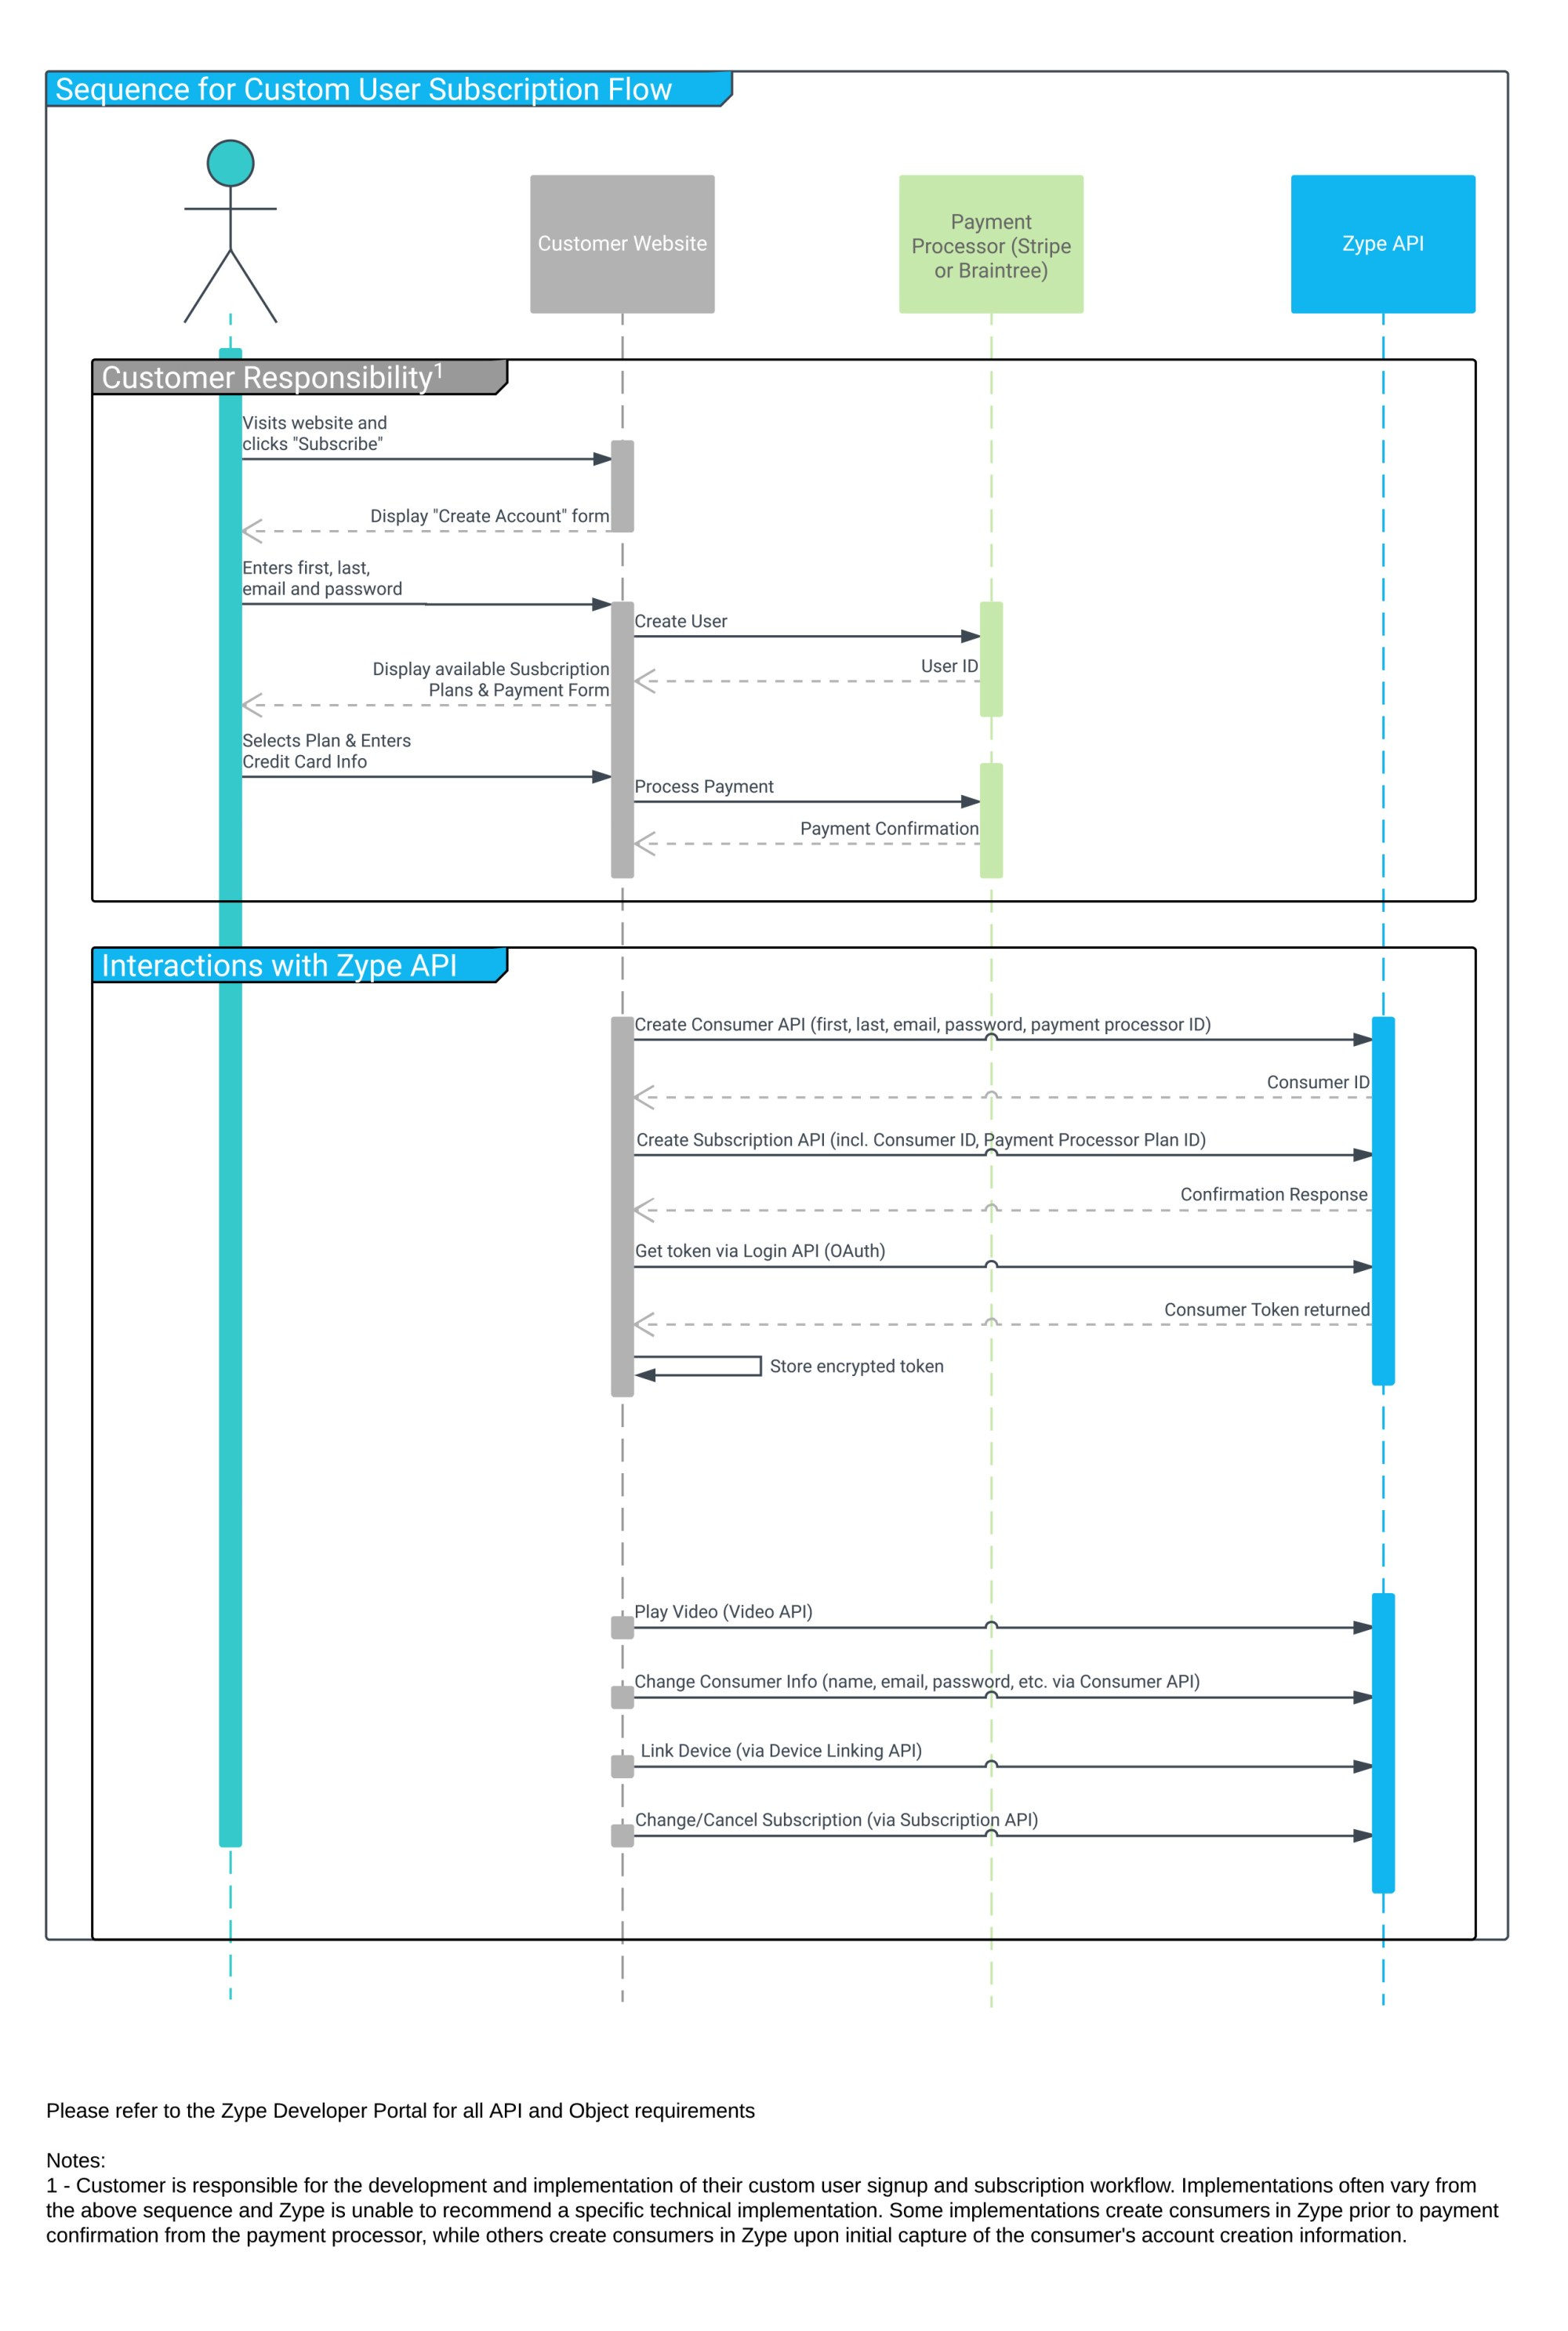 hight resolution of sequencediagramforcustomerusersubscriptionflow jpg